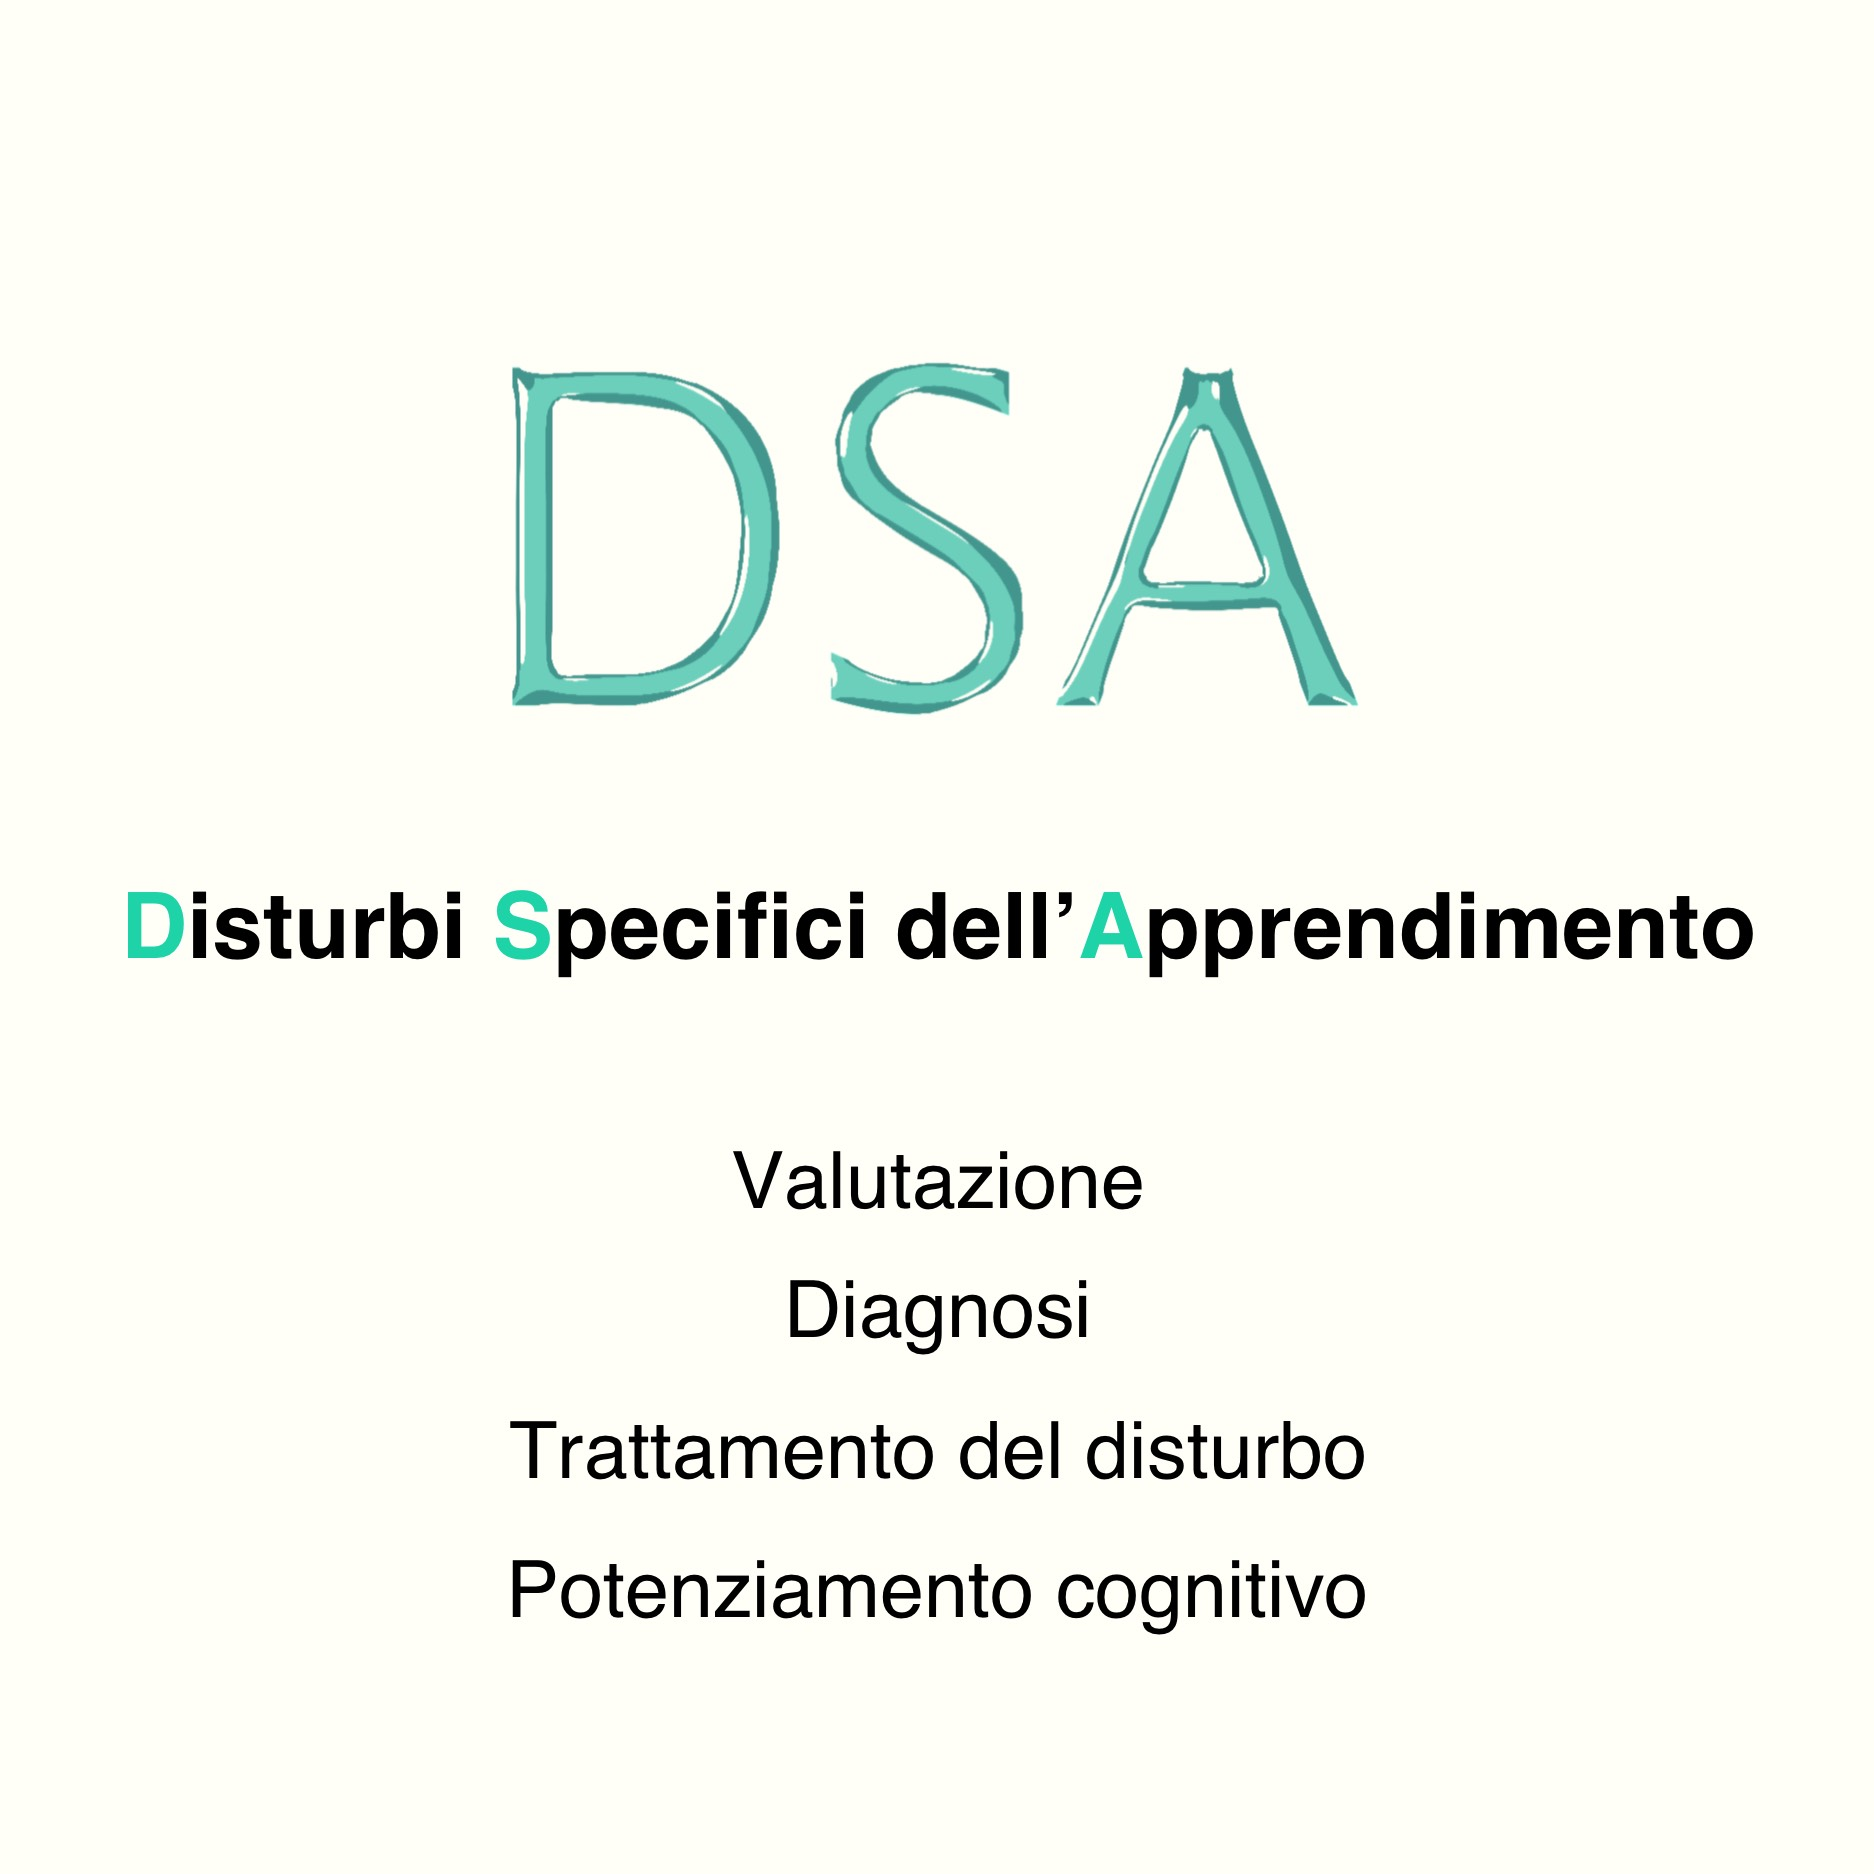 Disturbi specifici dell